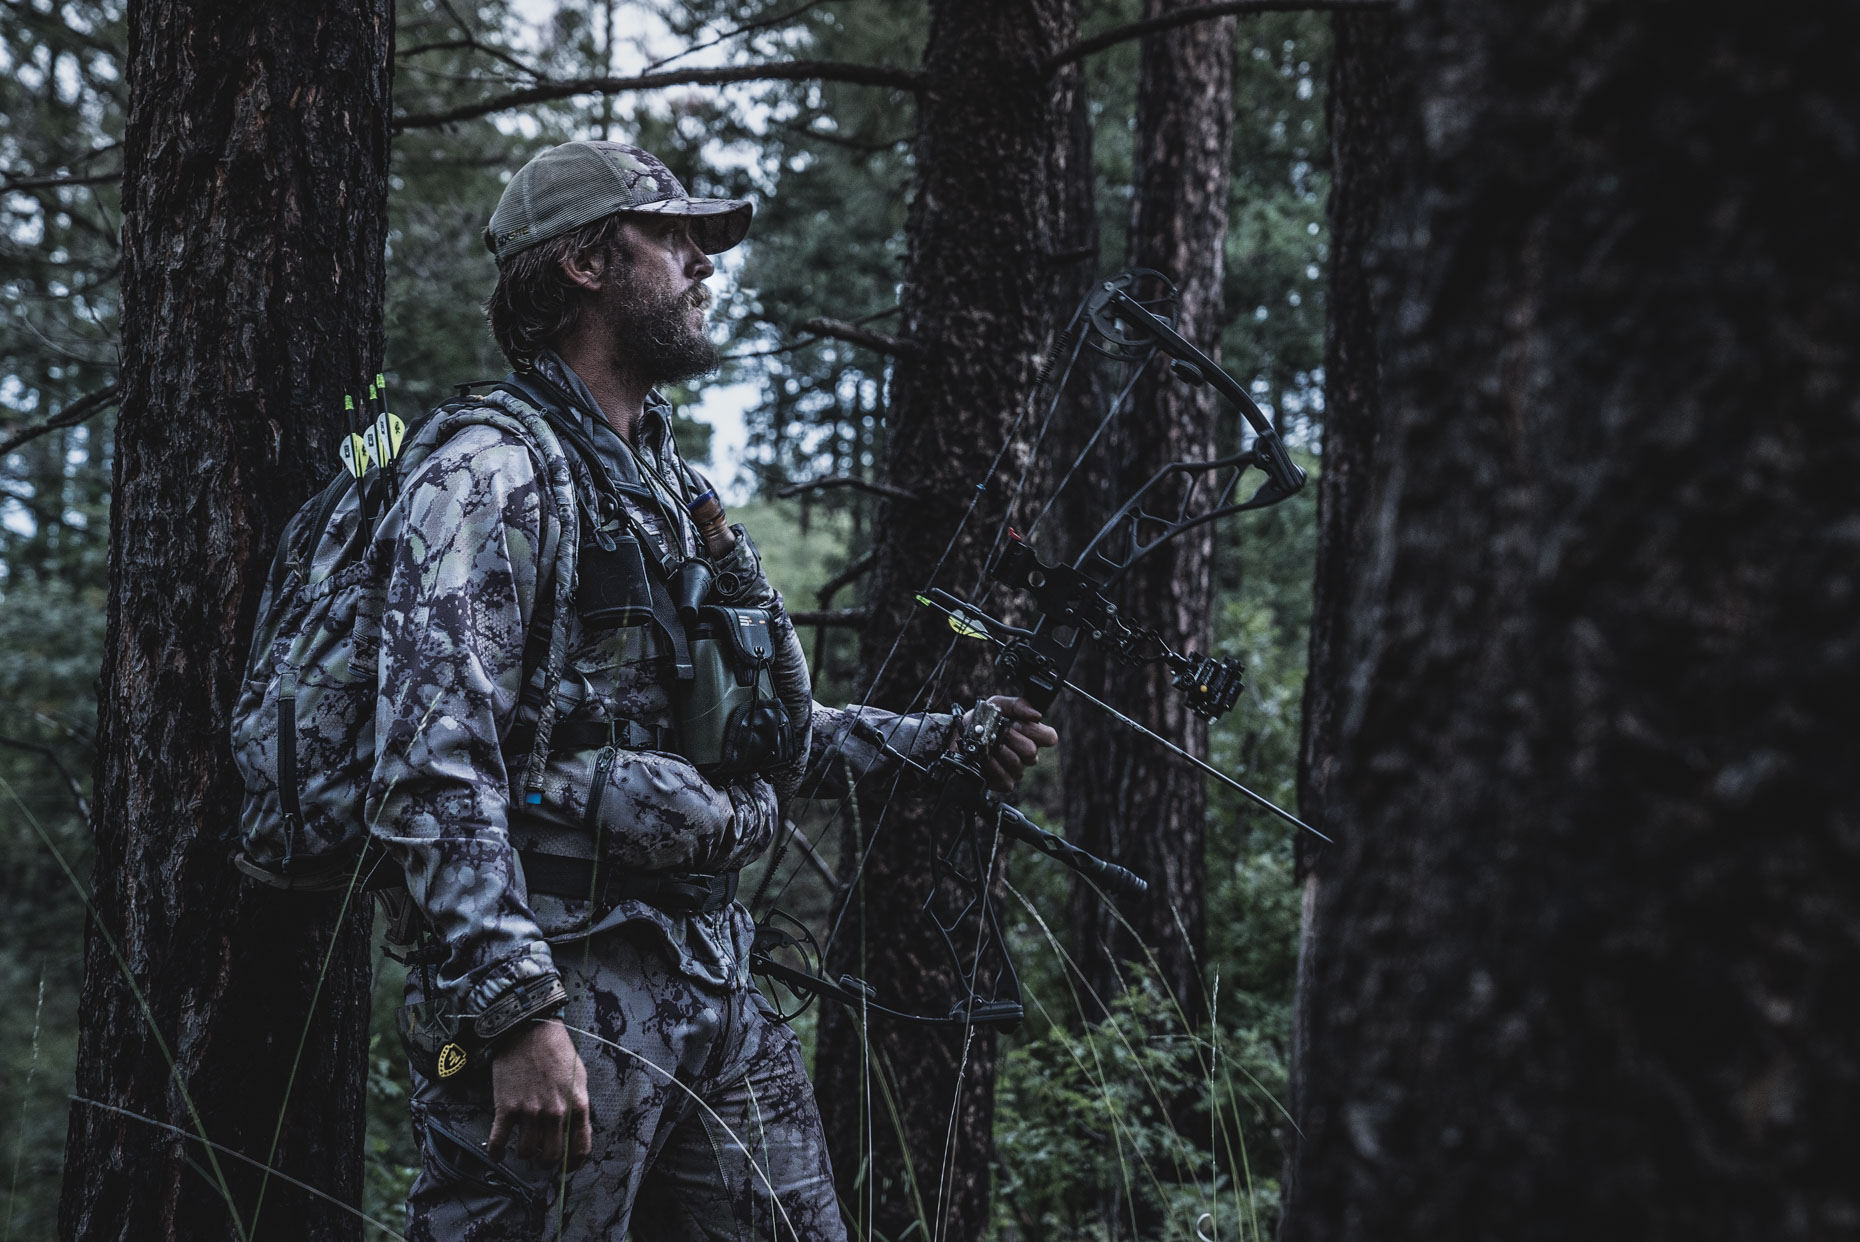 Will_Graham_Bowhunting_Elk-11